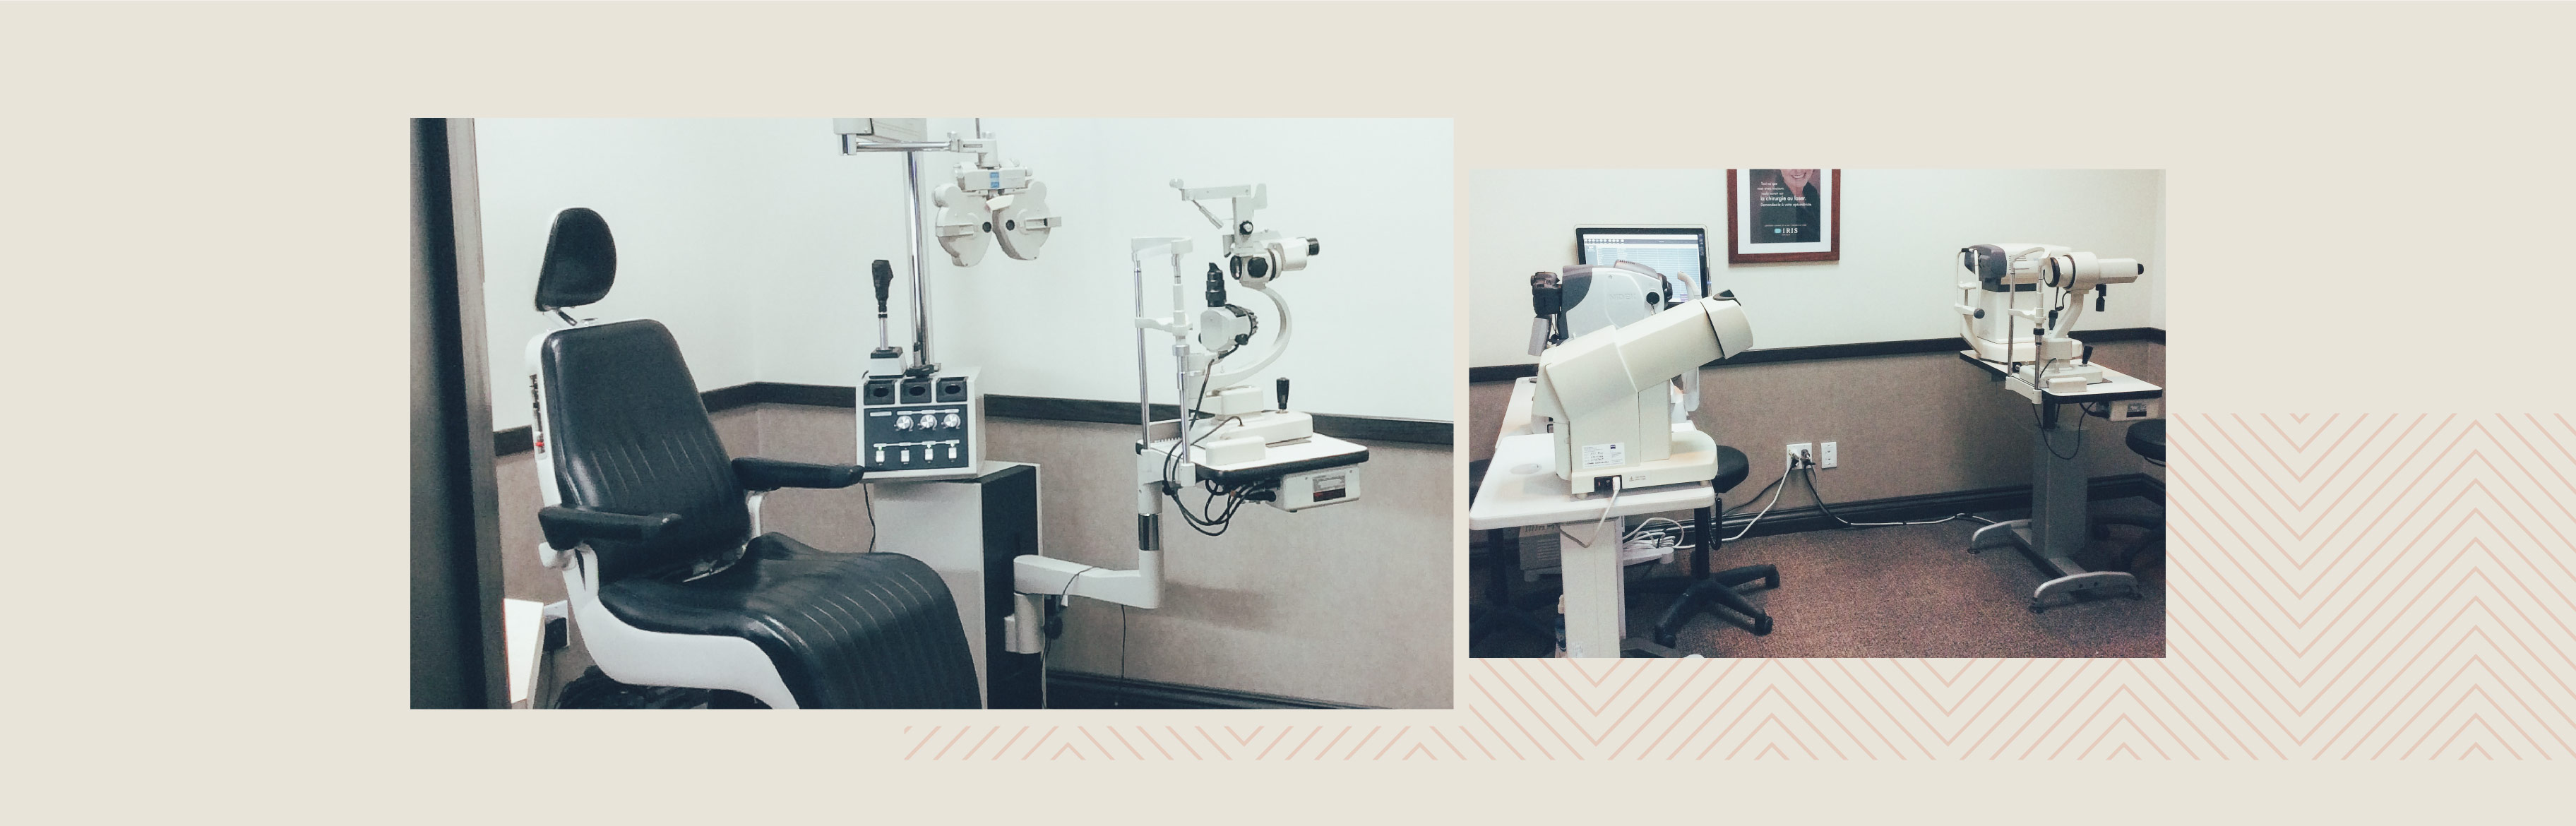 Collage of two photos of the IRIS Trois-Rivières store, one of the exam room with a patient chair and optometry equipment, and one of the test room with a tonometer and a few more optometry equipment.